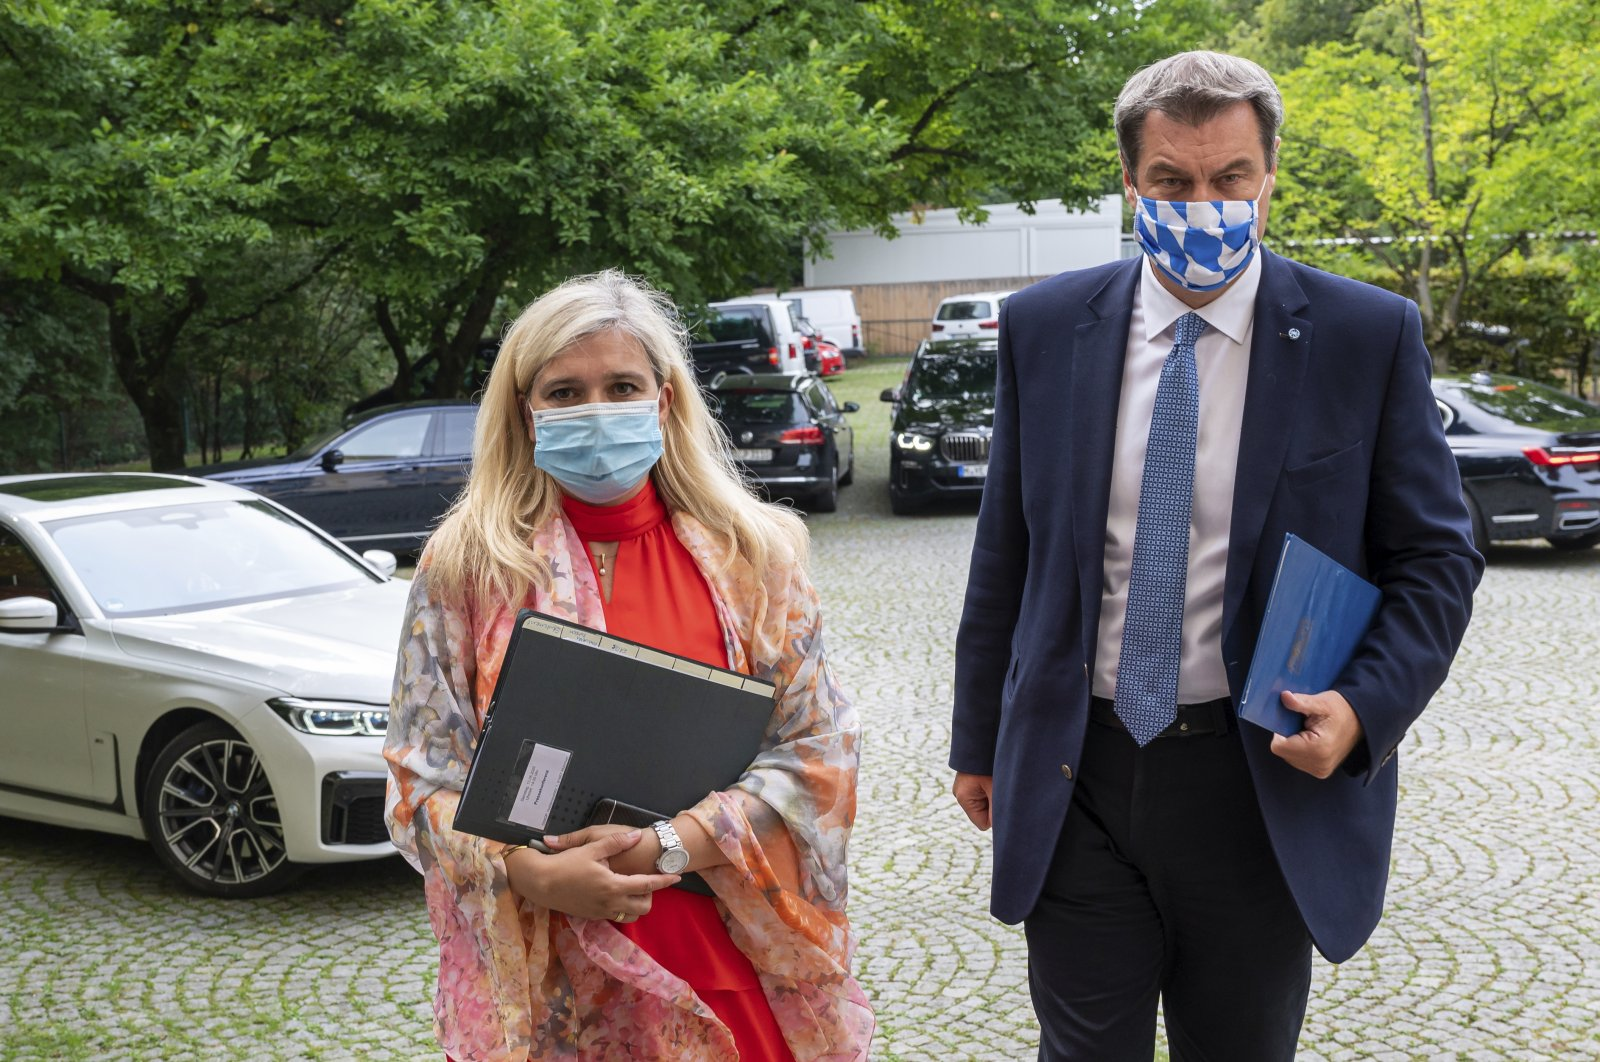 Melanie Huml, Health Minister of the German state of Bavaria, left, and Bavaria's premier Markus Soeder, right, arrive for a joint press conference in Munich, Germany, Thursday, Aug. 13, 2020. (AP Photo)